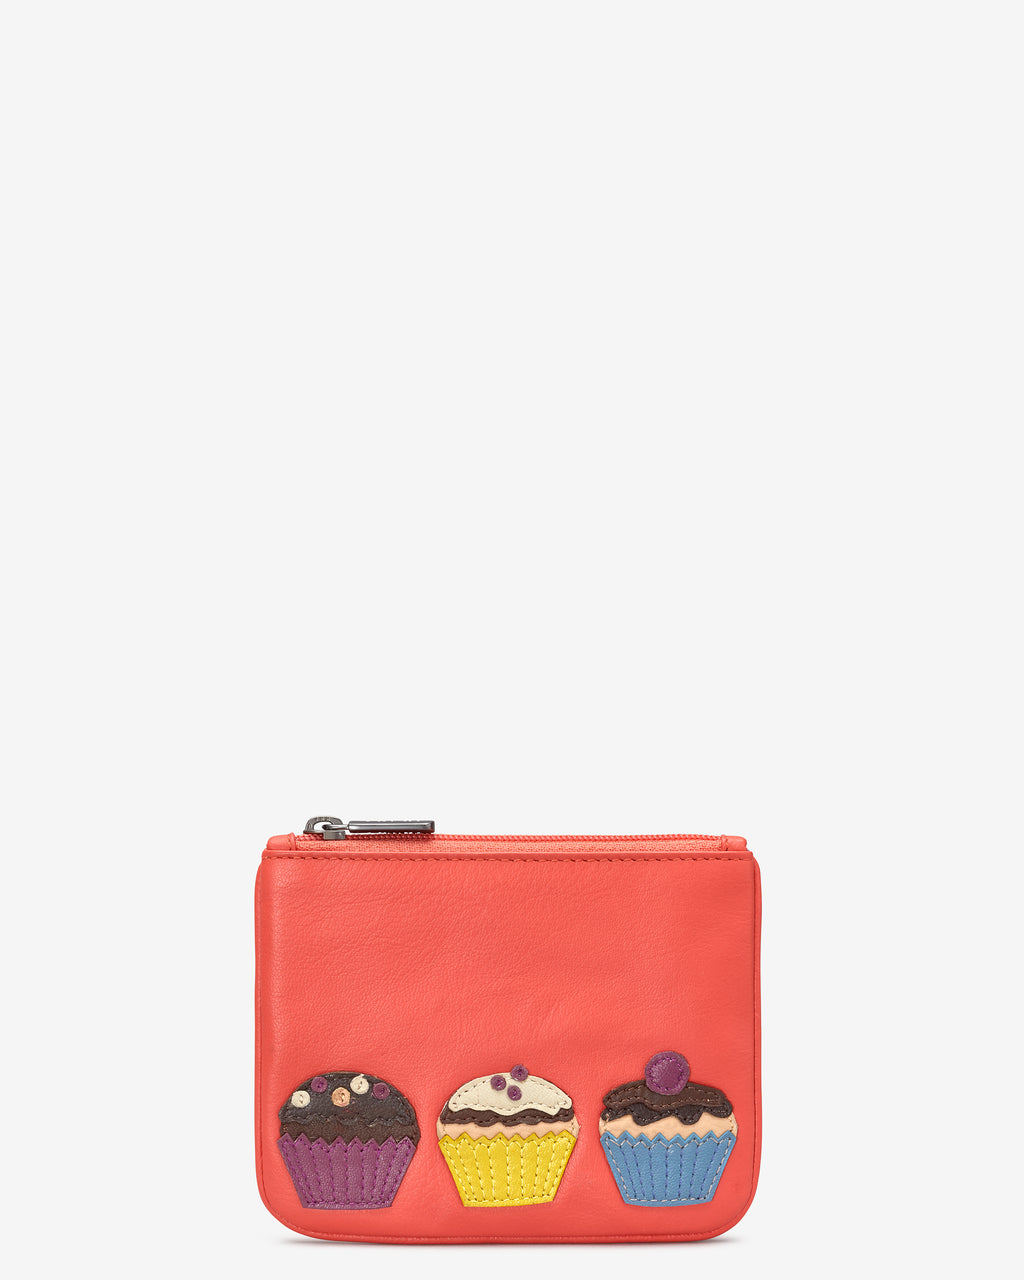 Y By Yoshi Cupcake Leather Zip Top Purse